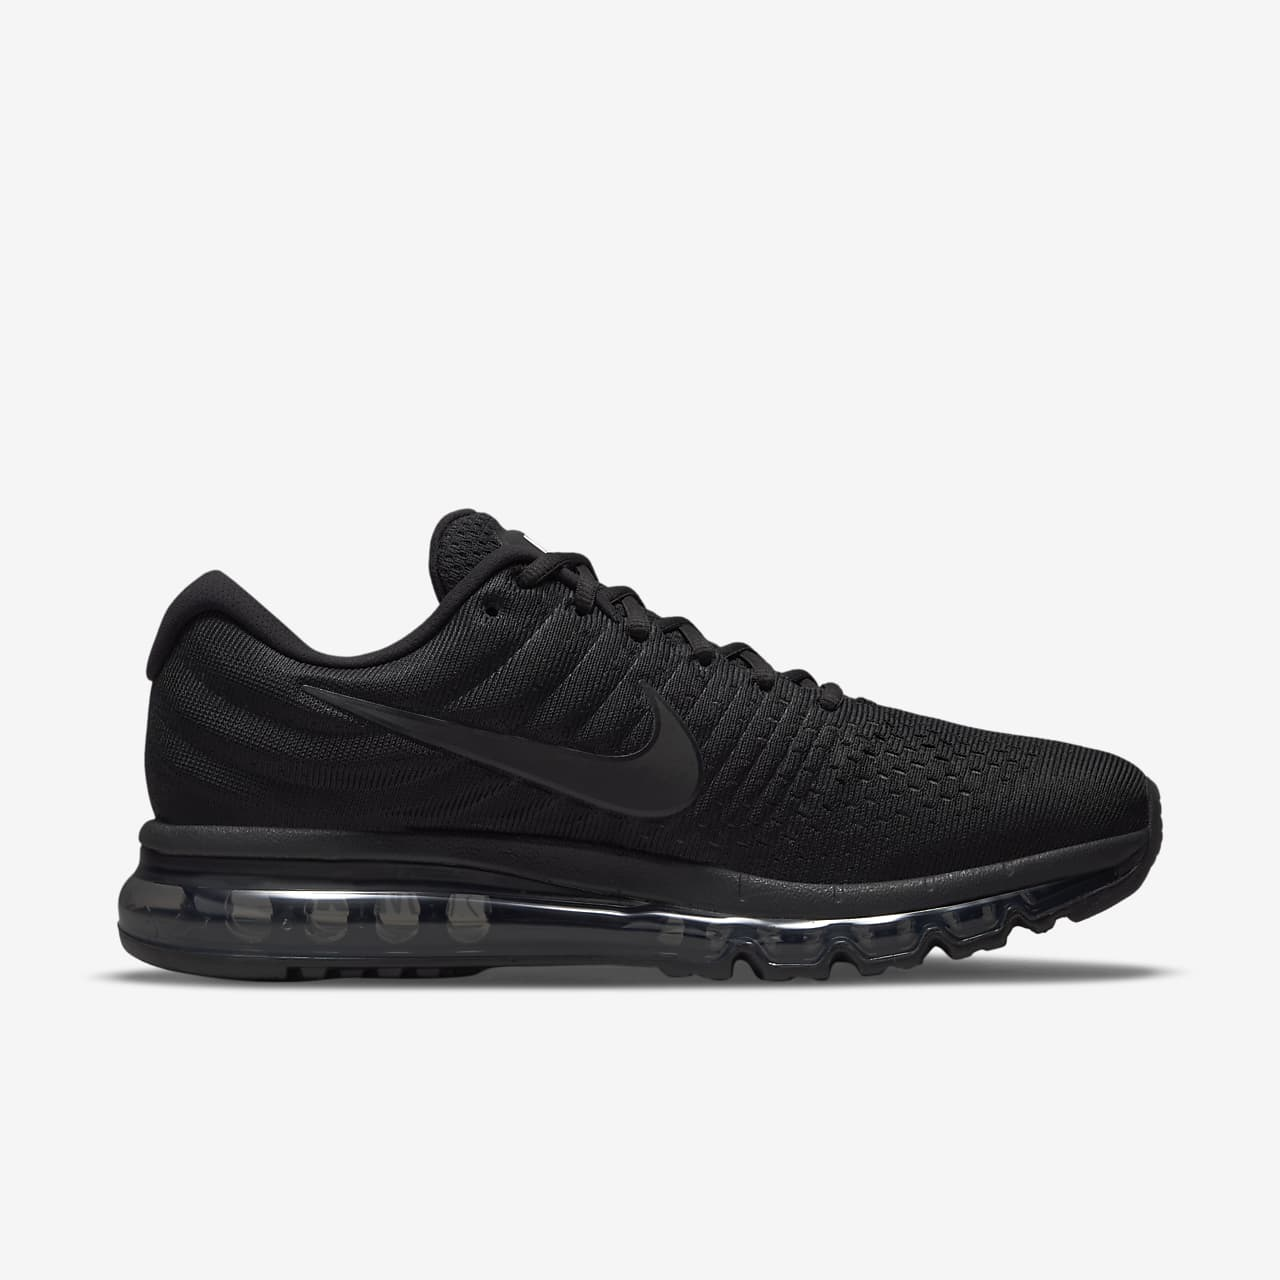 2017 air max mens black and white nz